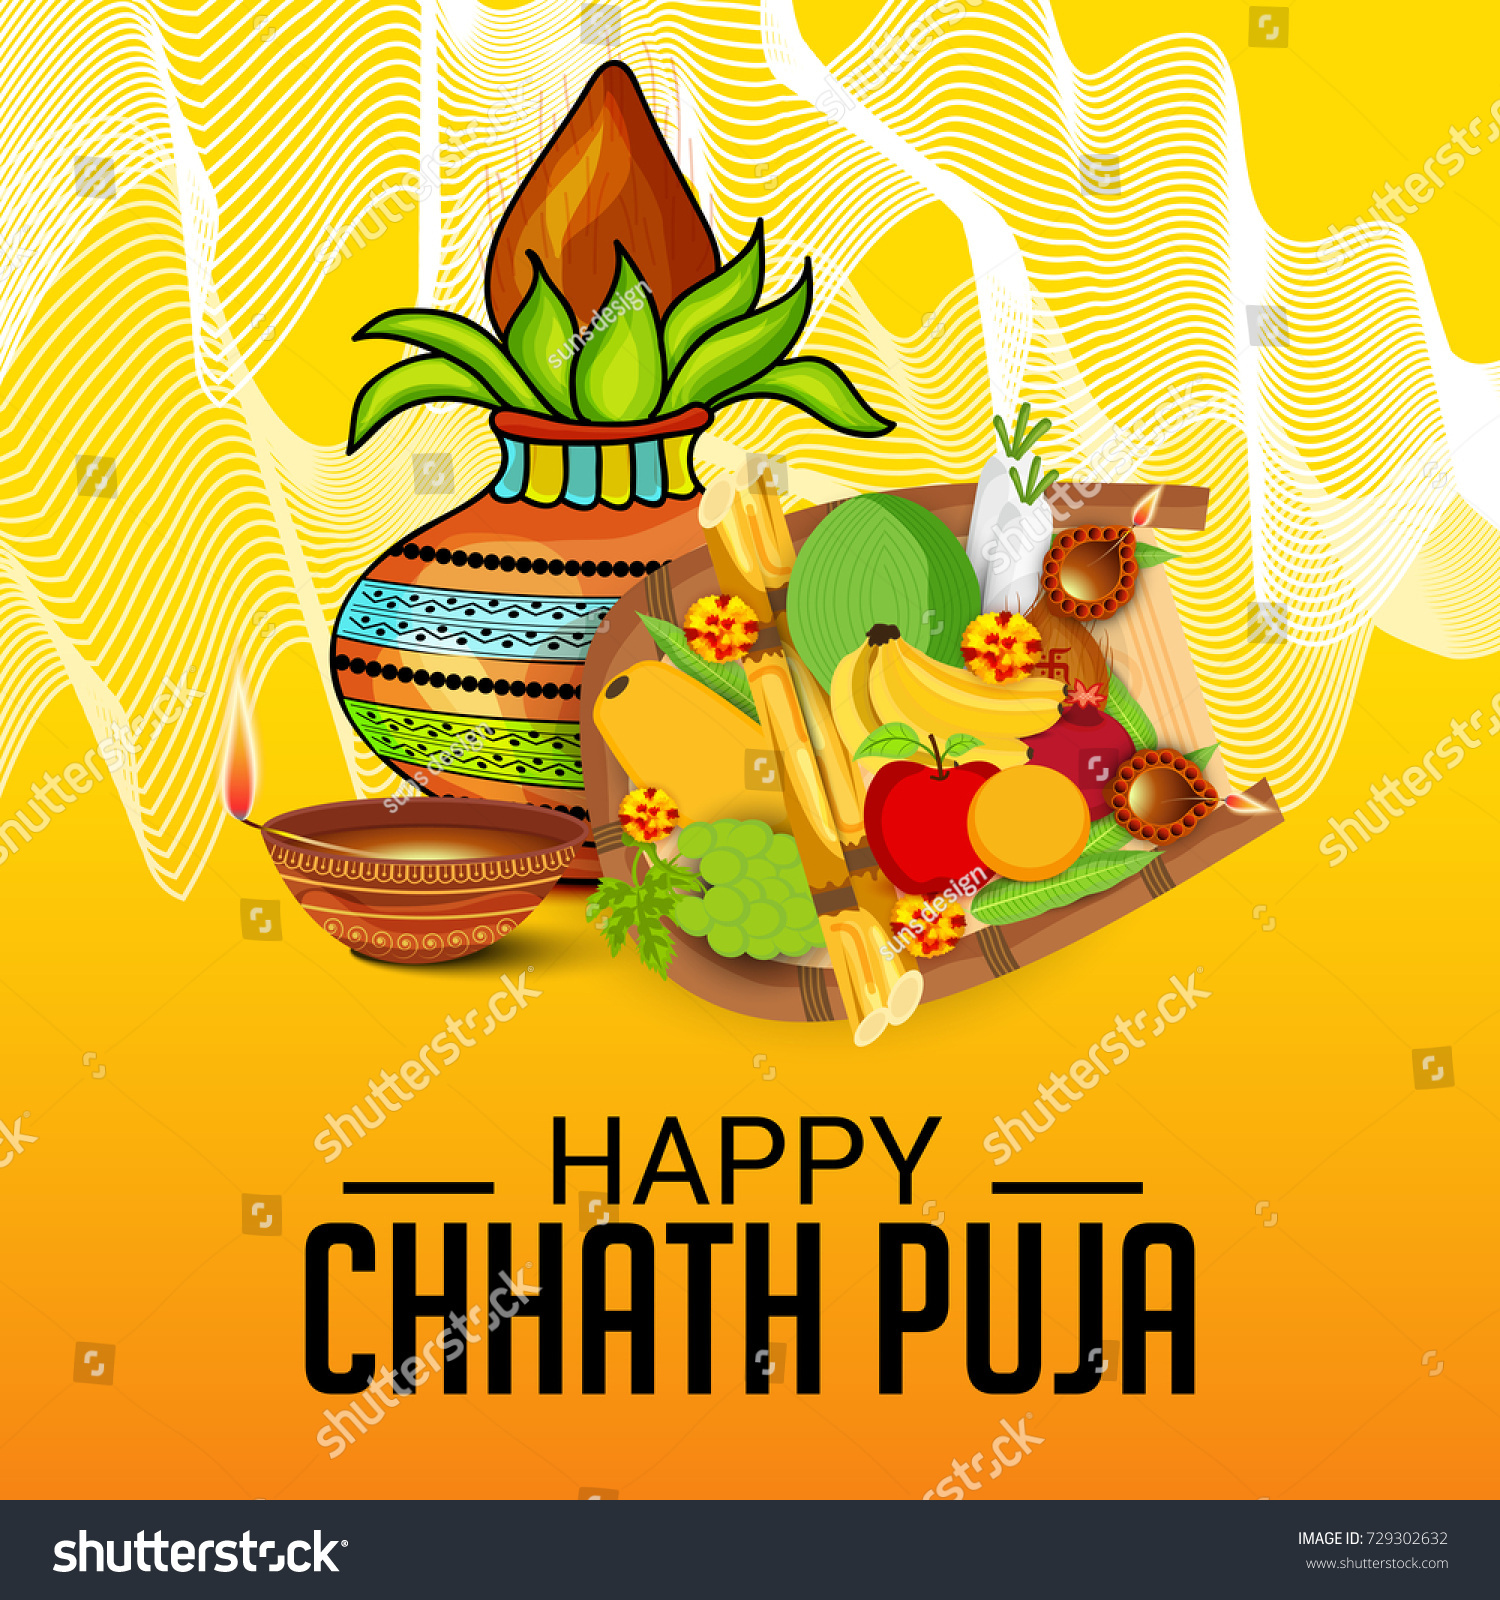 Puja Banners Cartoon Disney Banners